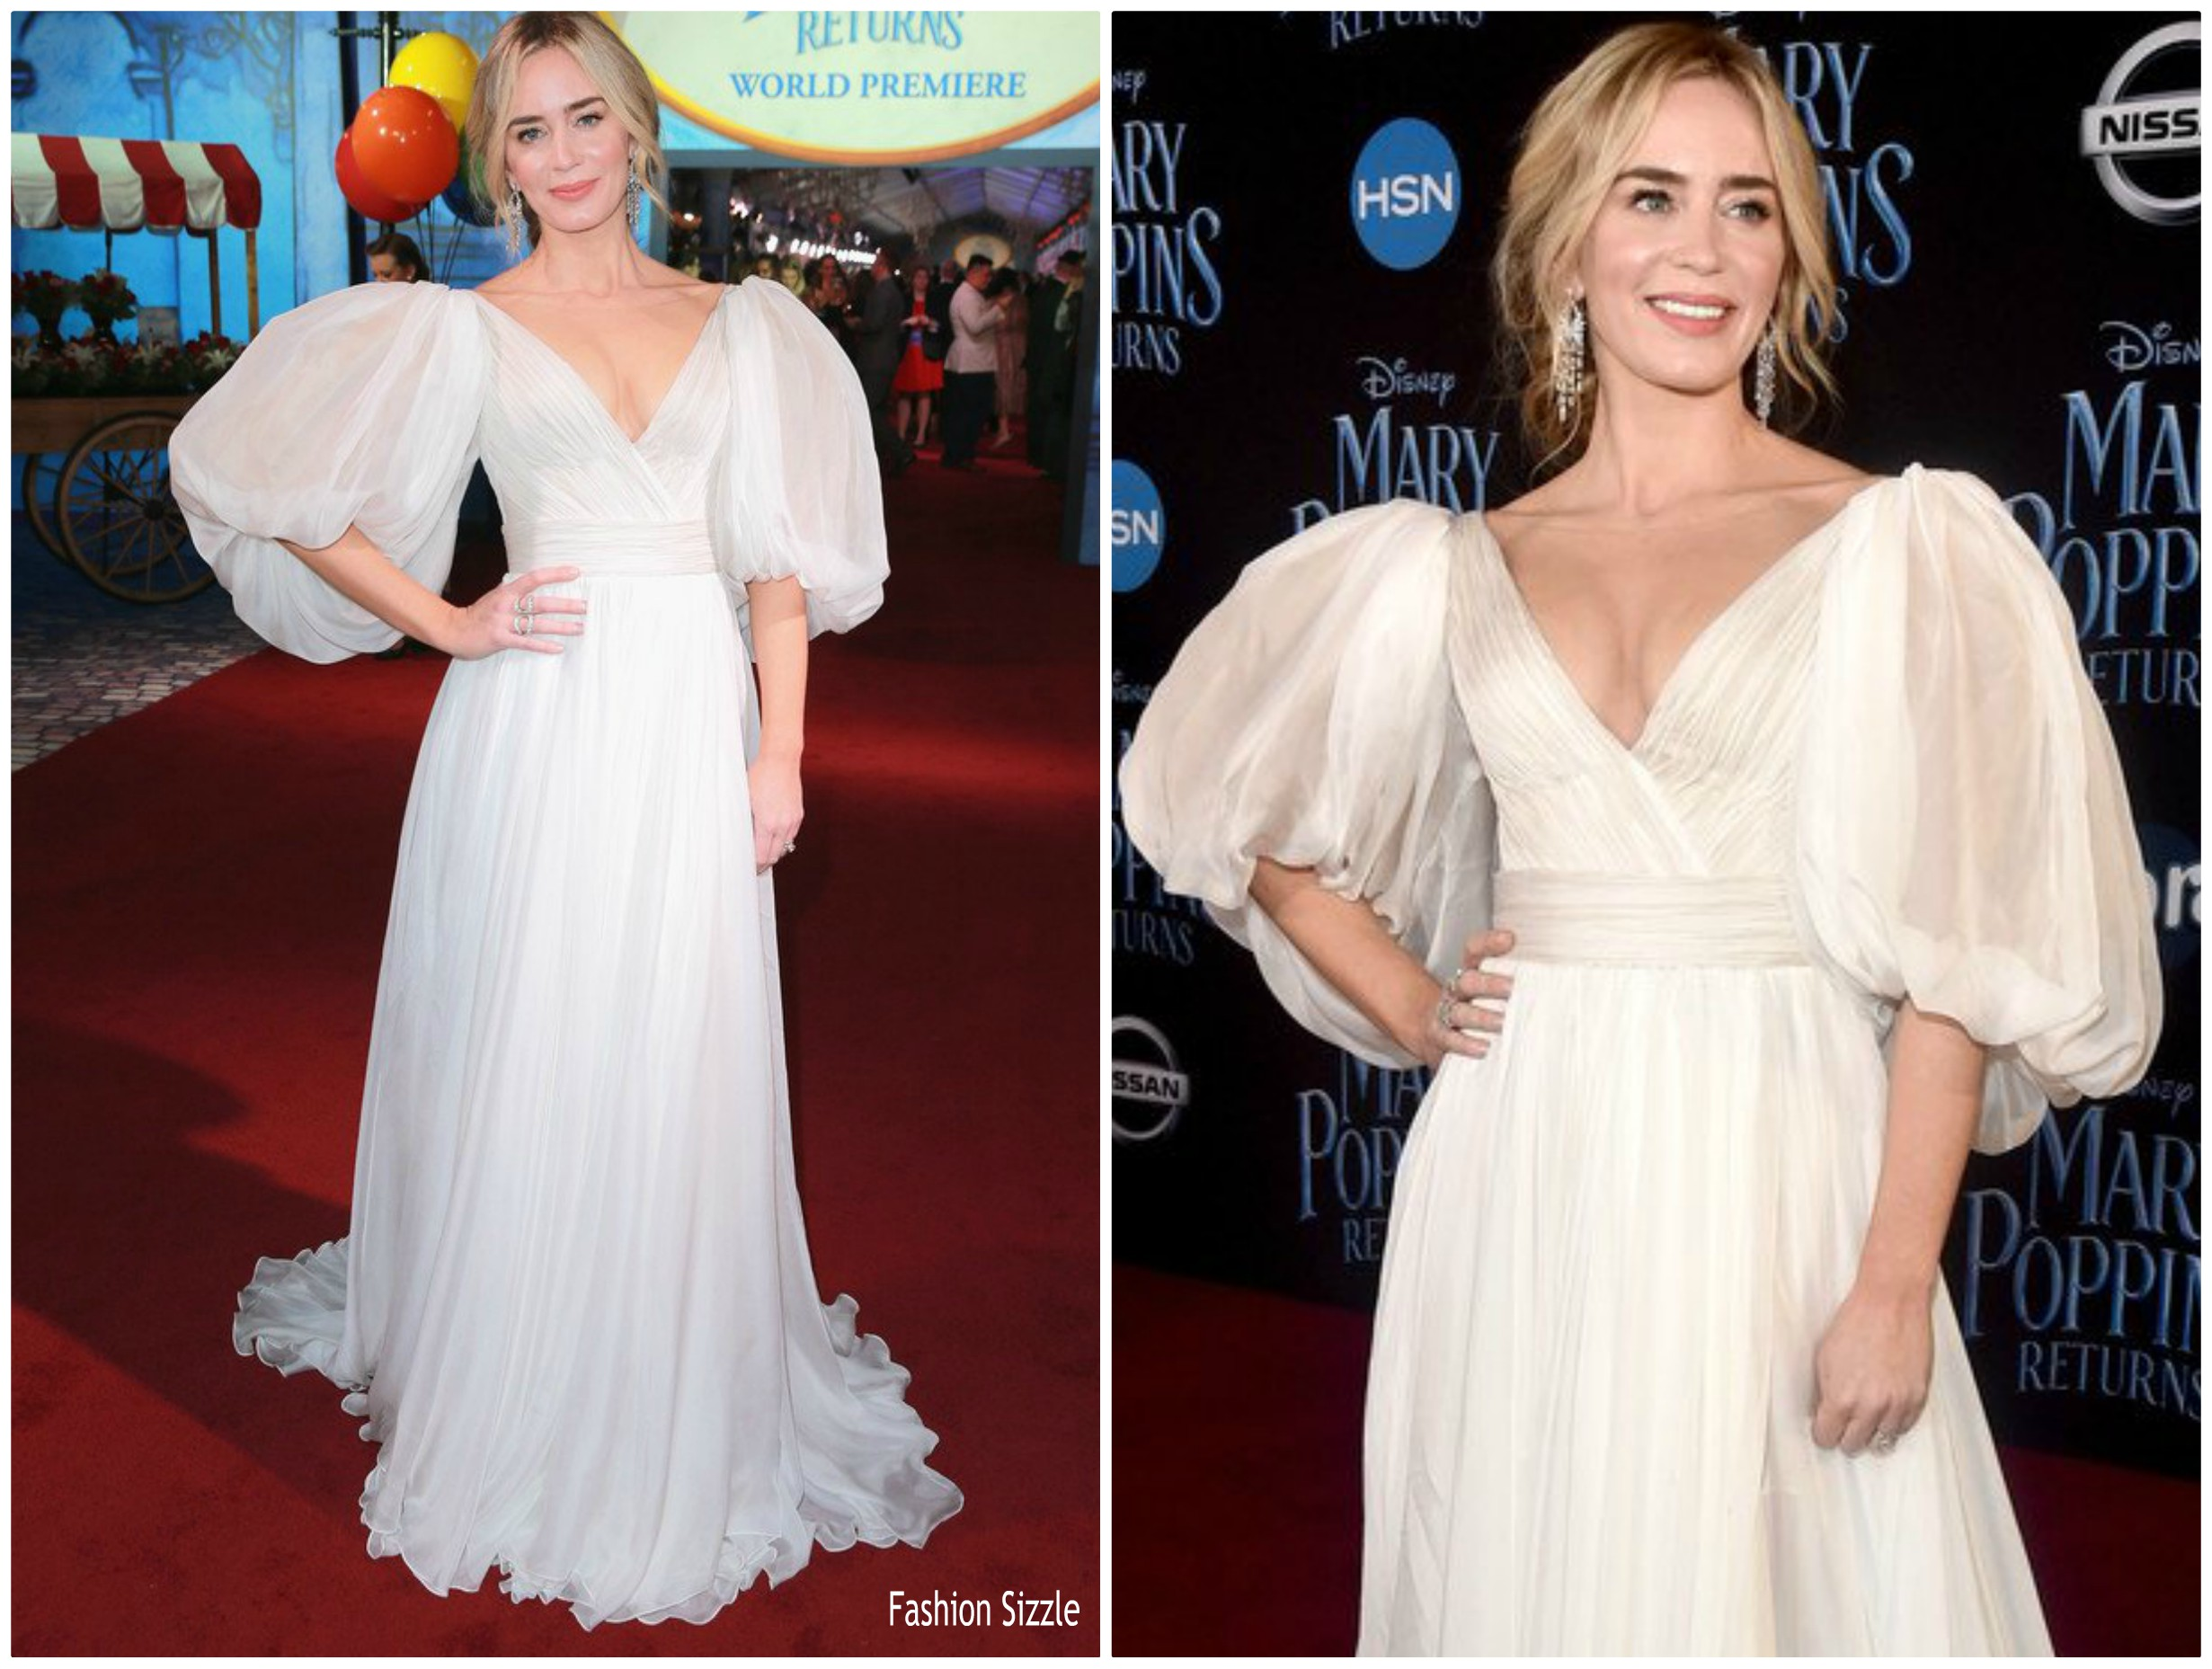 emily-blunt-in-yanina-couture-mary-poppins-returns-la-premiere